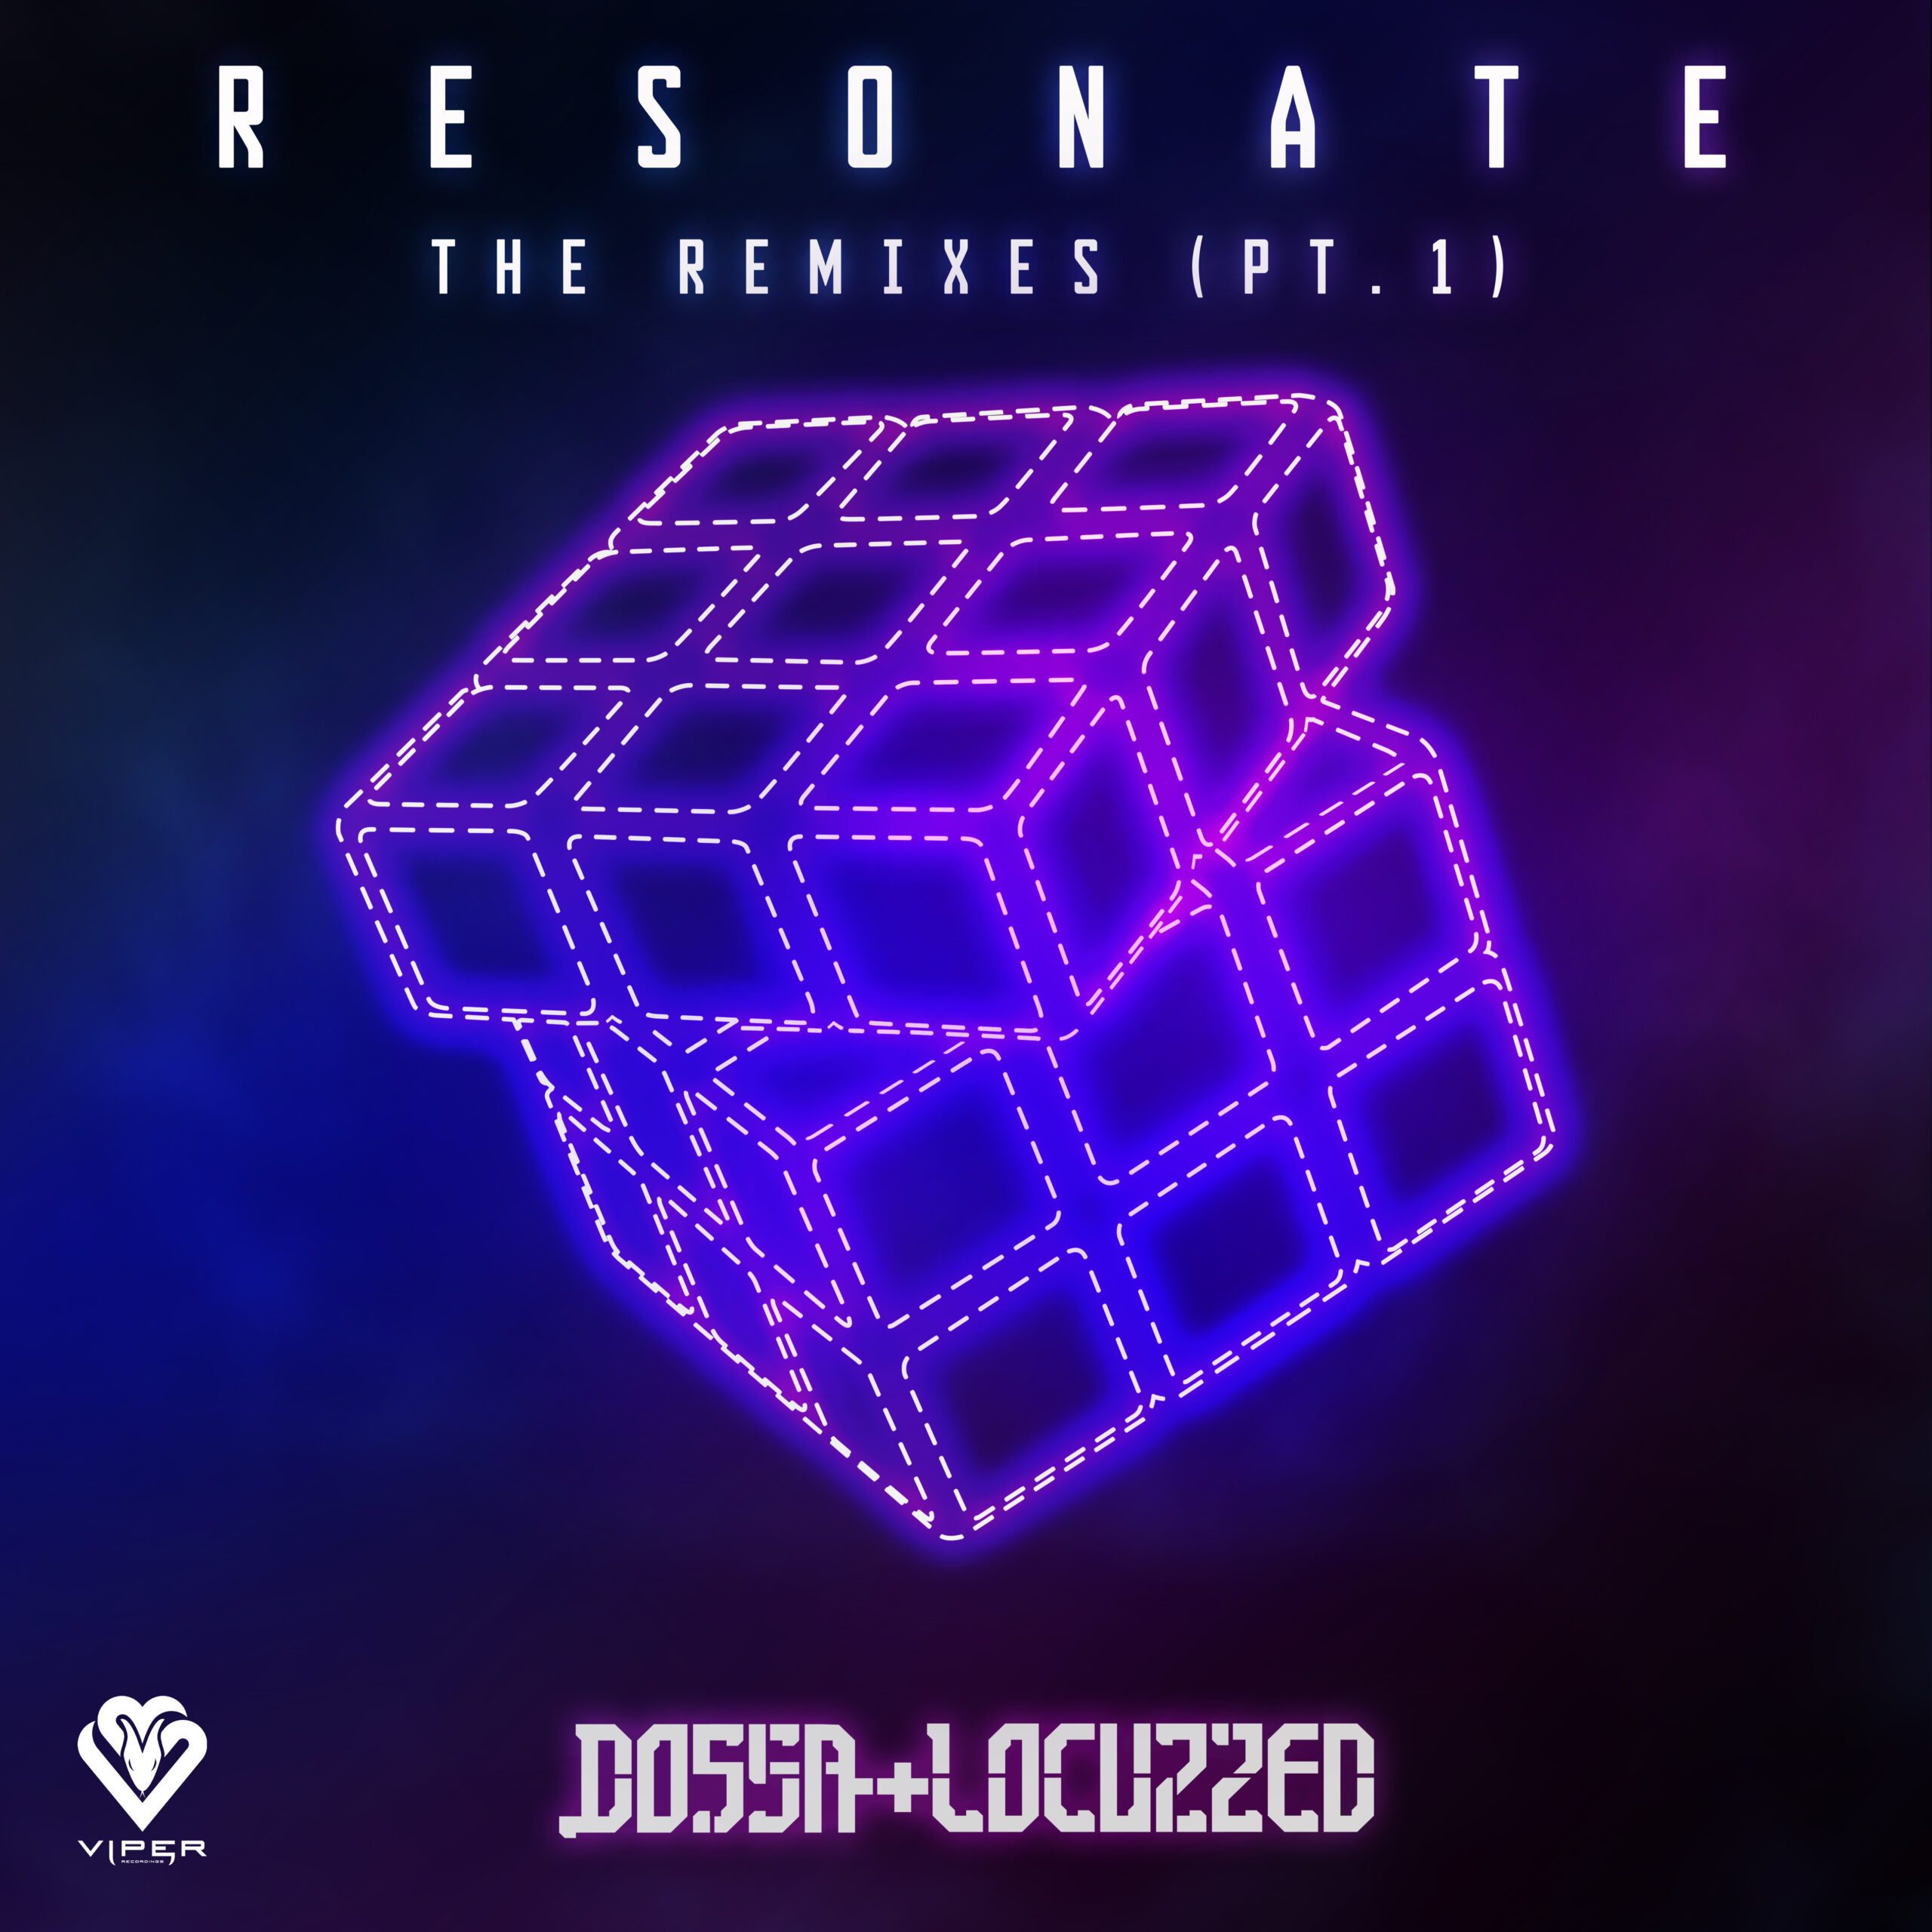 Dossa & Locuzzed - Resonate (The Remixes) Pt. 1 [VPR203]